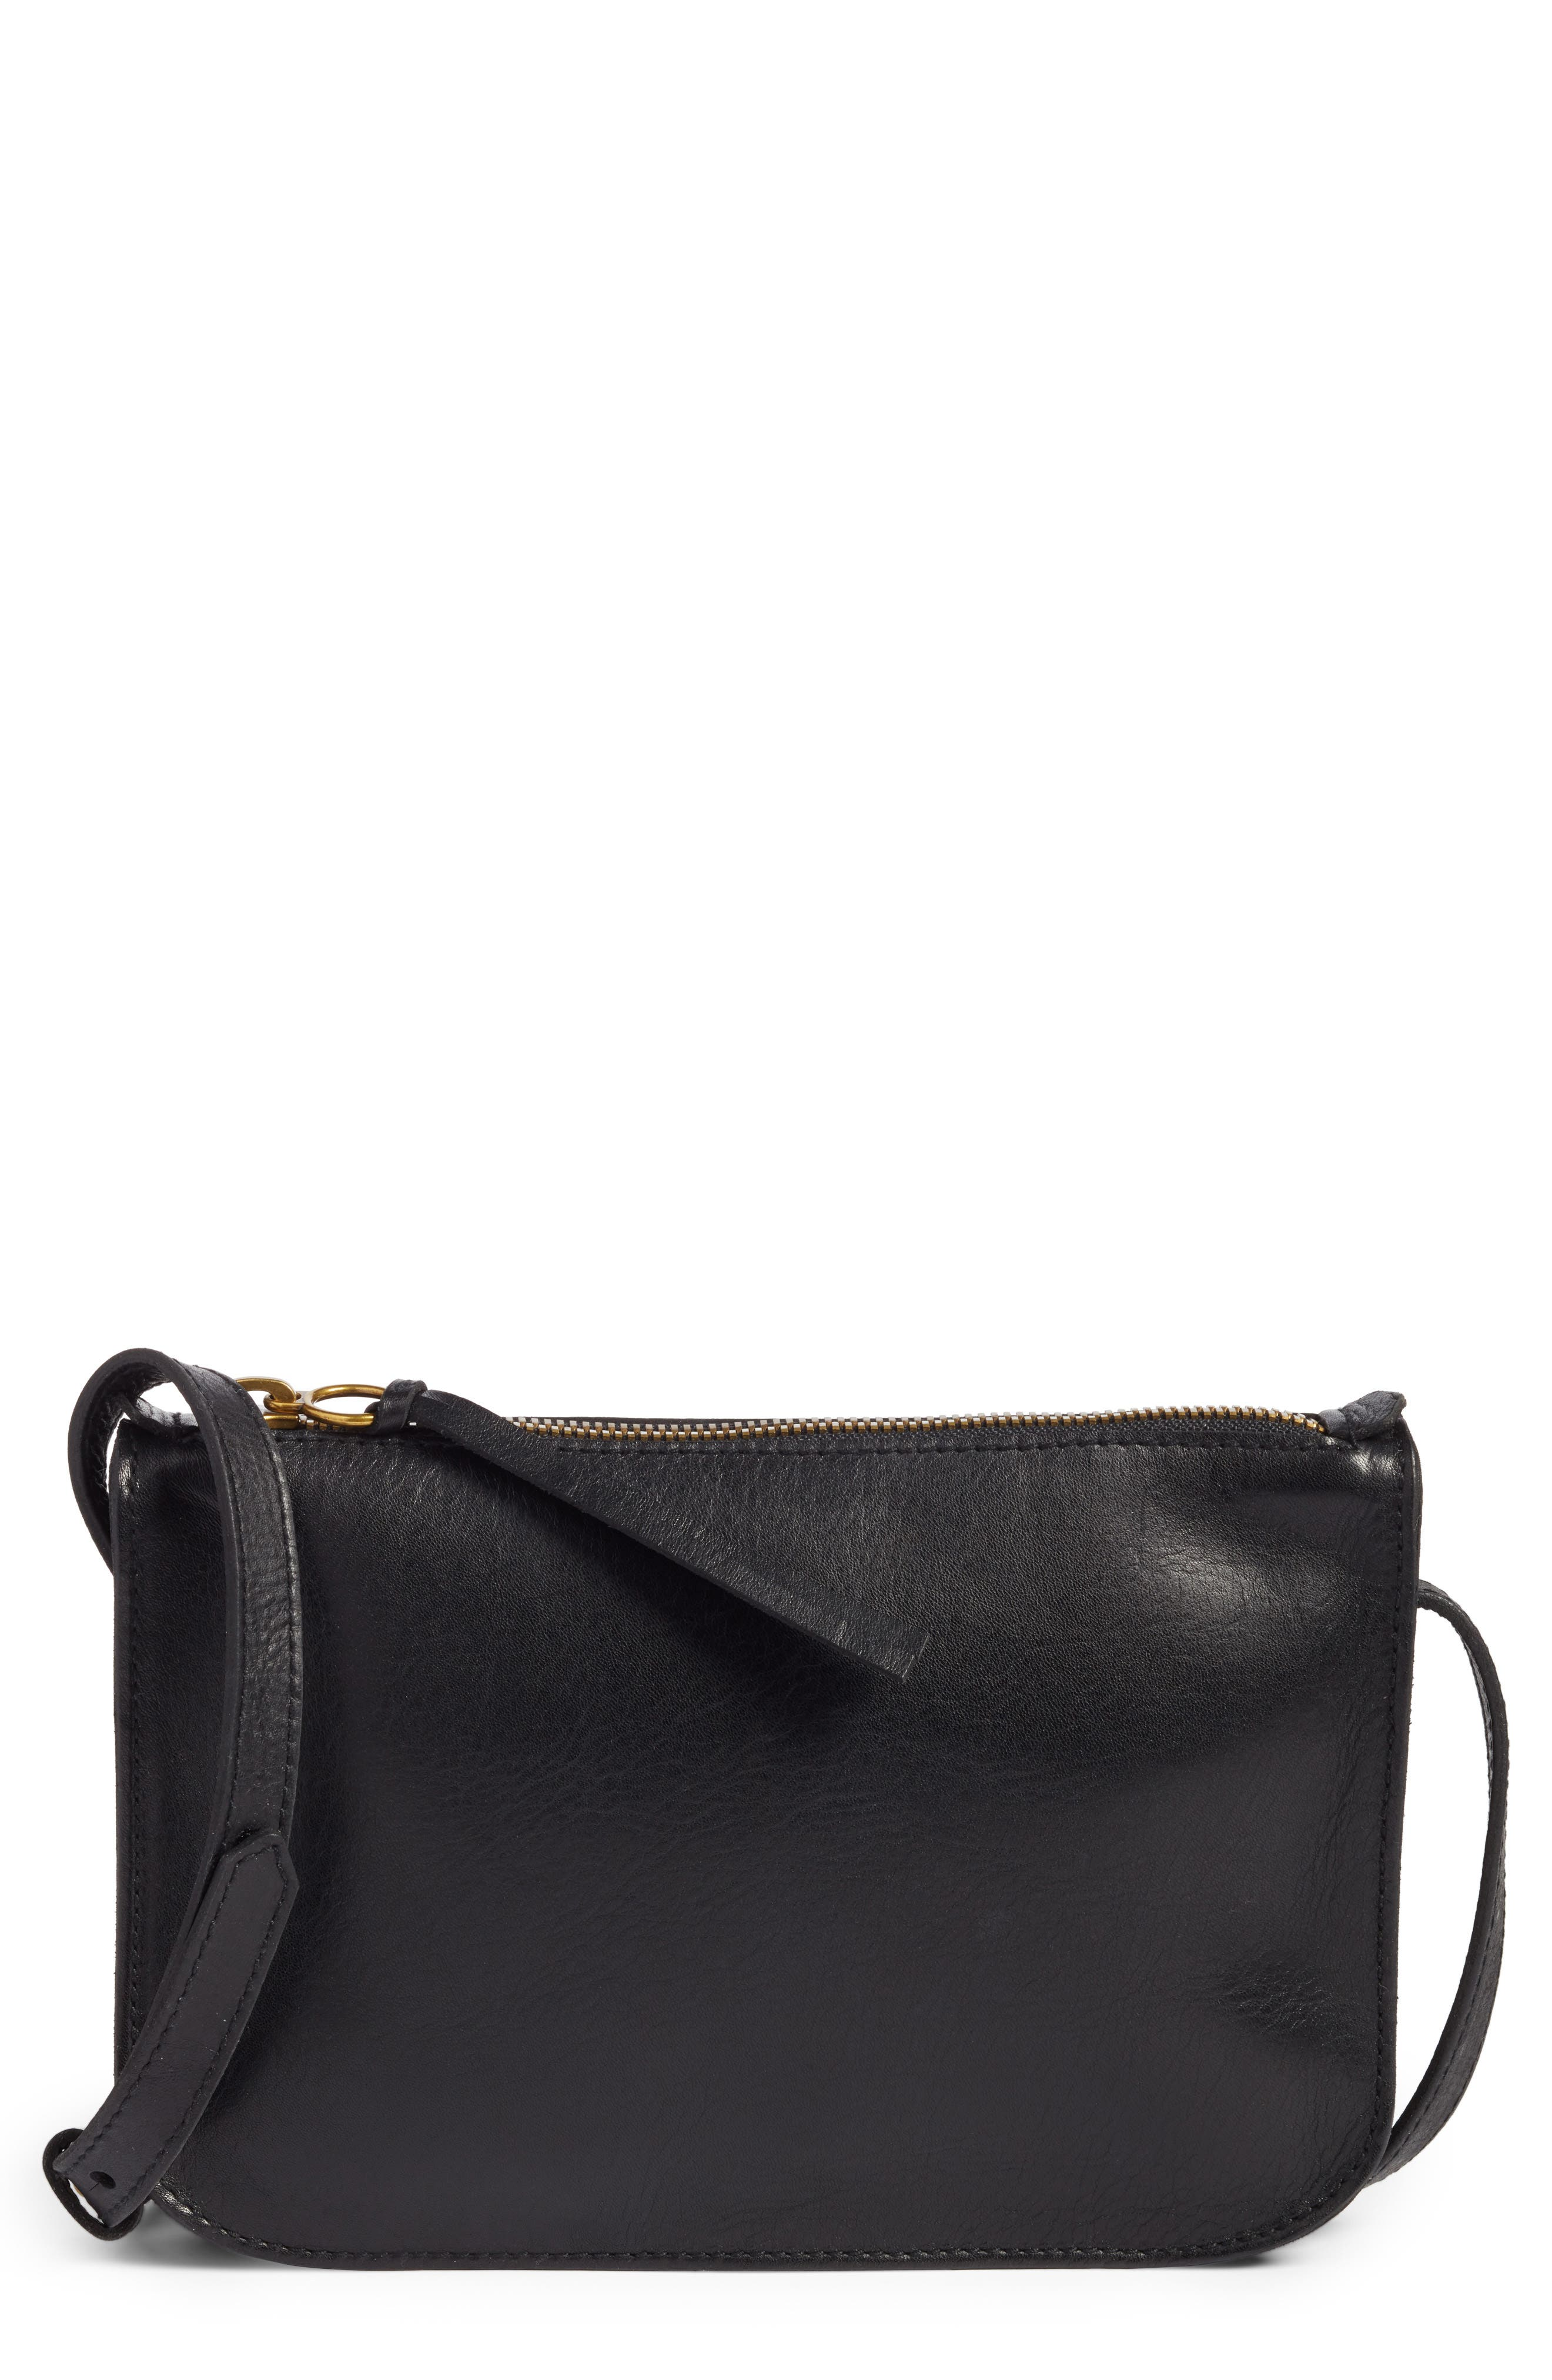 The Simple Leather Crossbody Bag,                             Main thumbnail 1, color,                             TRUE BLACK